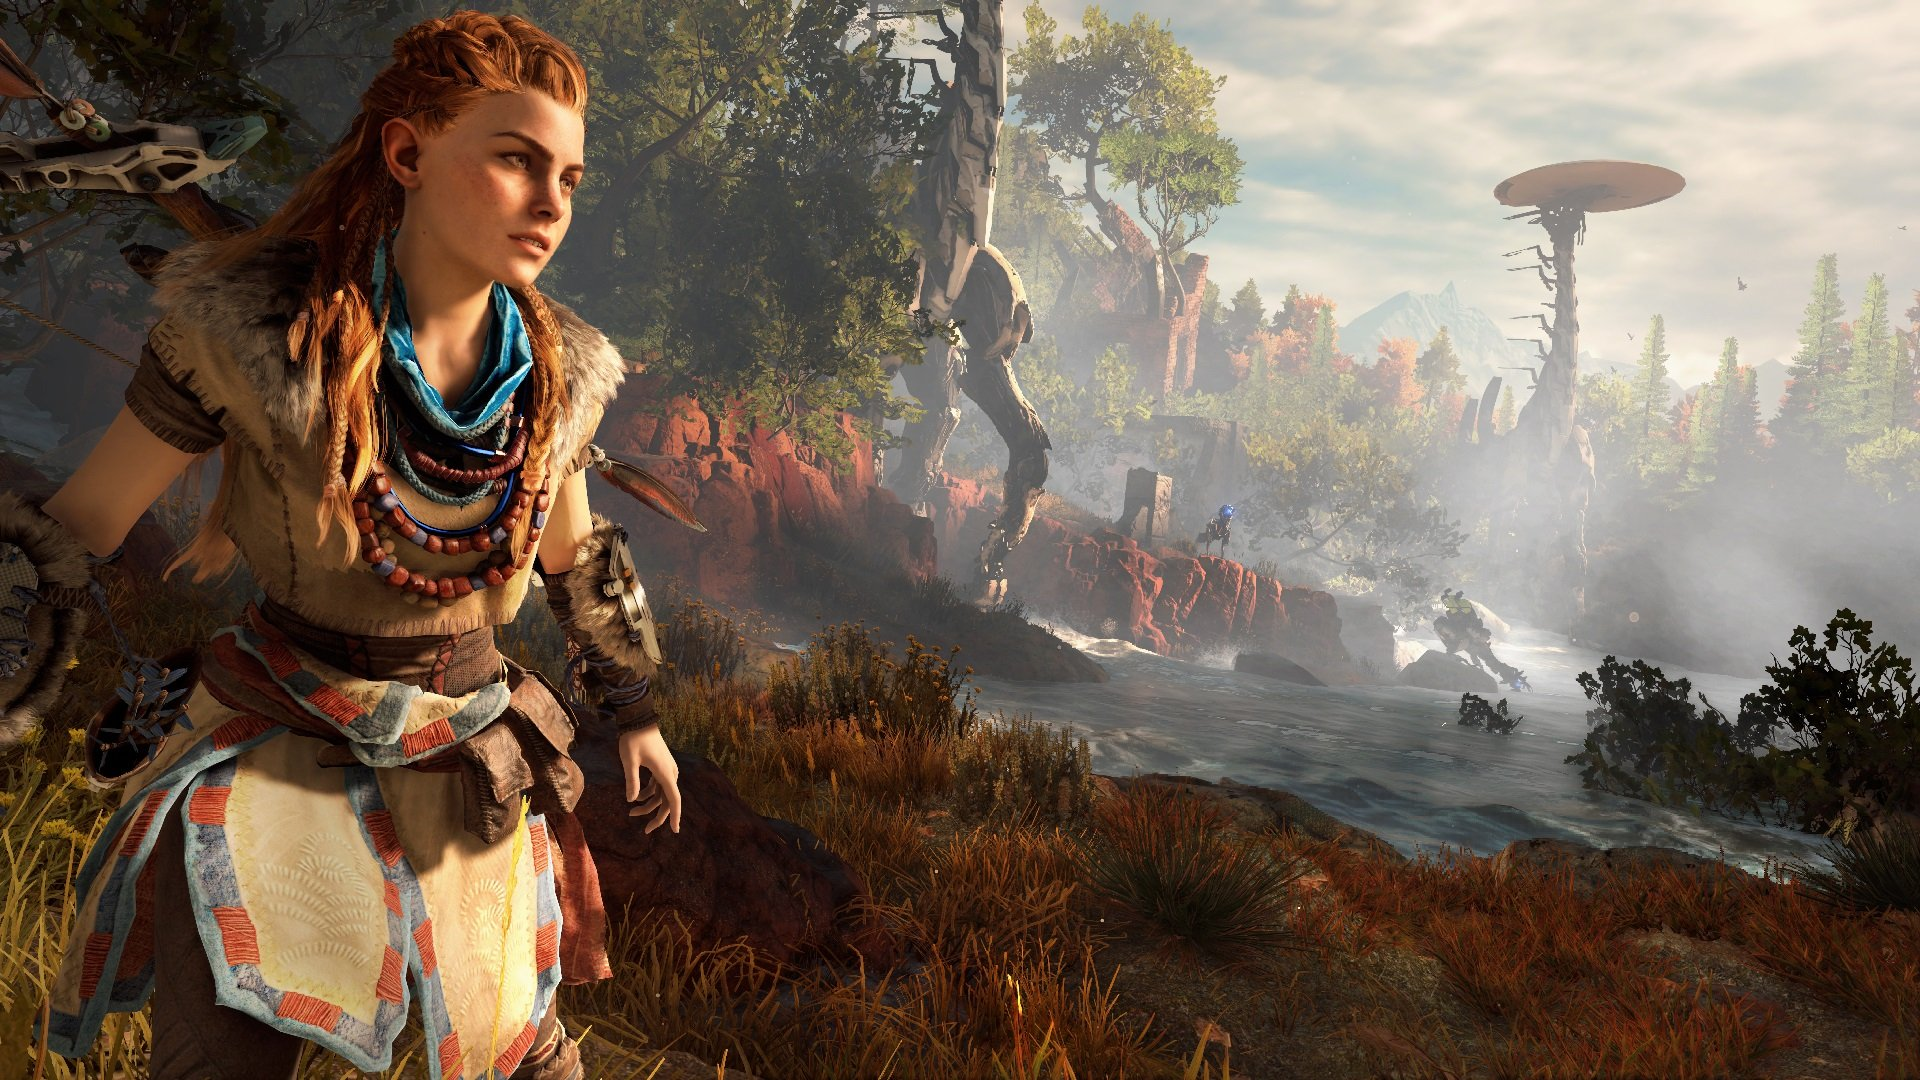 One of our favorite games on PlayStation 4 is Horizon Zero Dawn, and we're really hoping to see a sequel come out as a launch title for PlayStation 5.